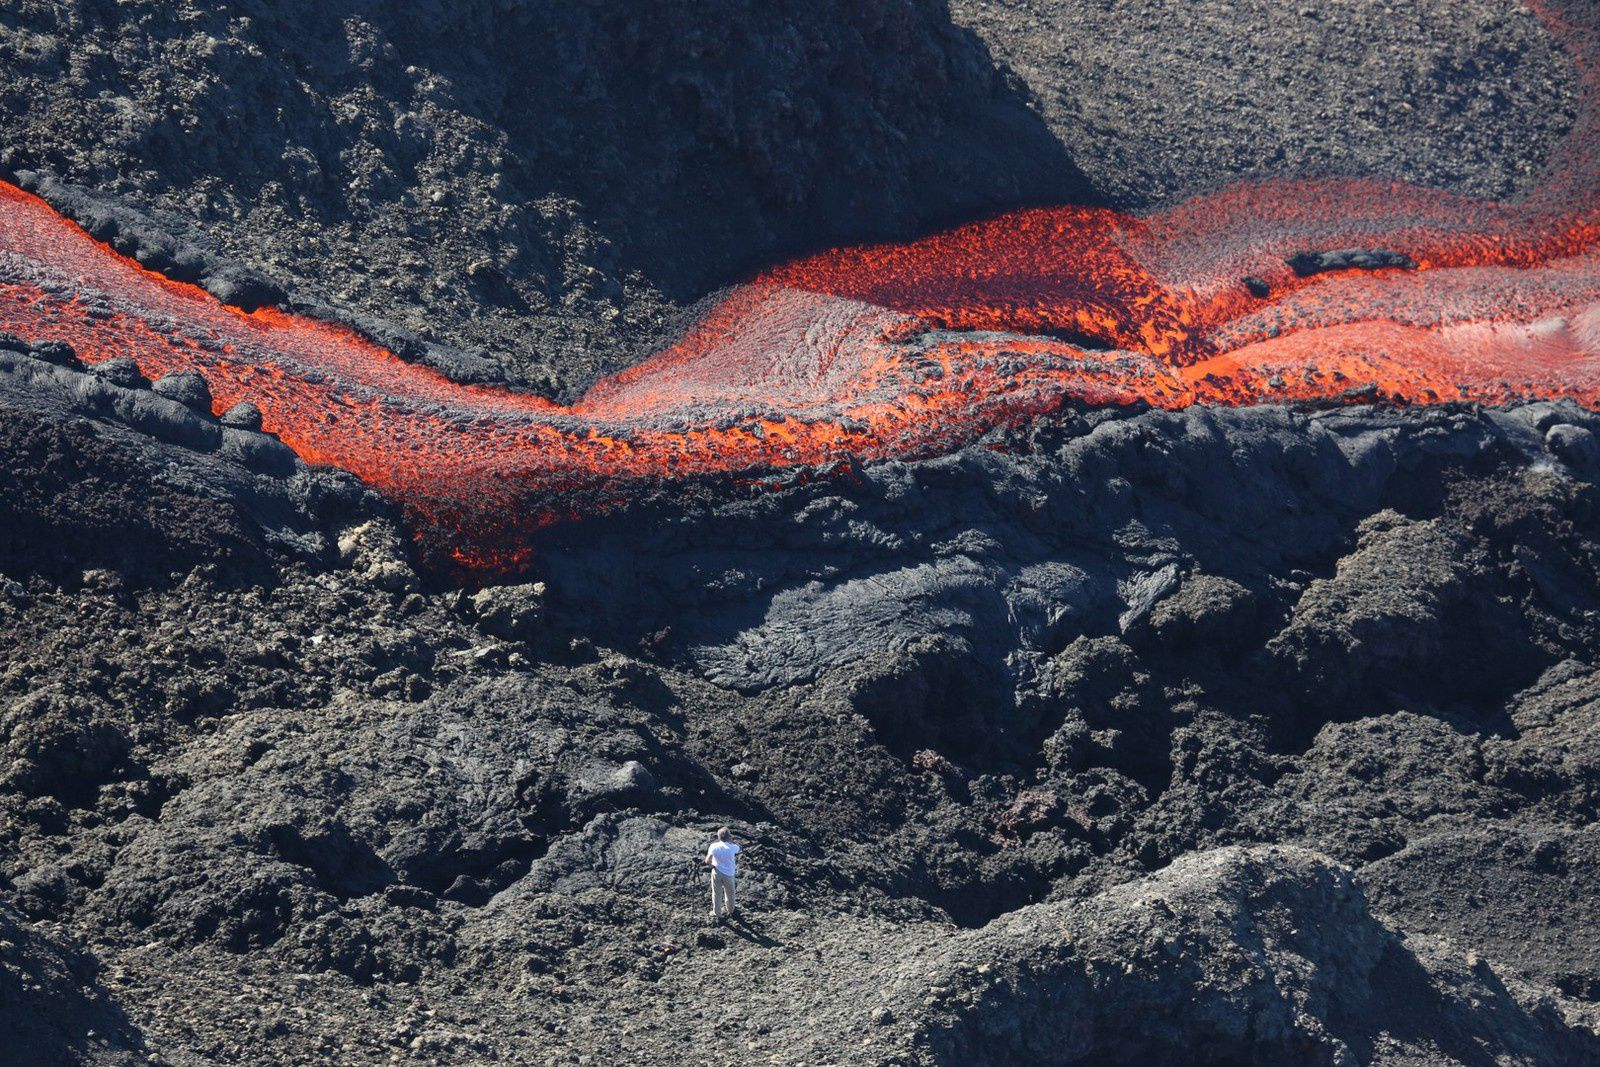 Piton de la Fournaise - one of the lava flows - the volcanologist in the foreground allows to estimate the width - photo Richard Bouhet / AFP